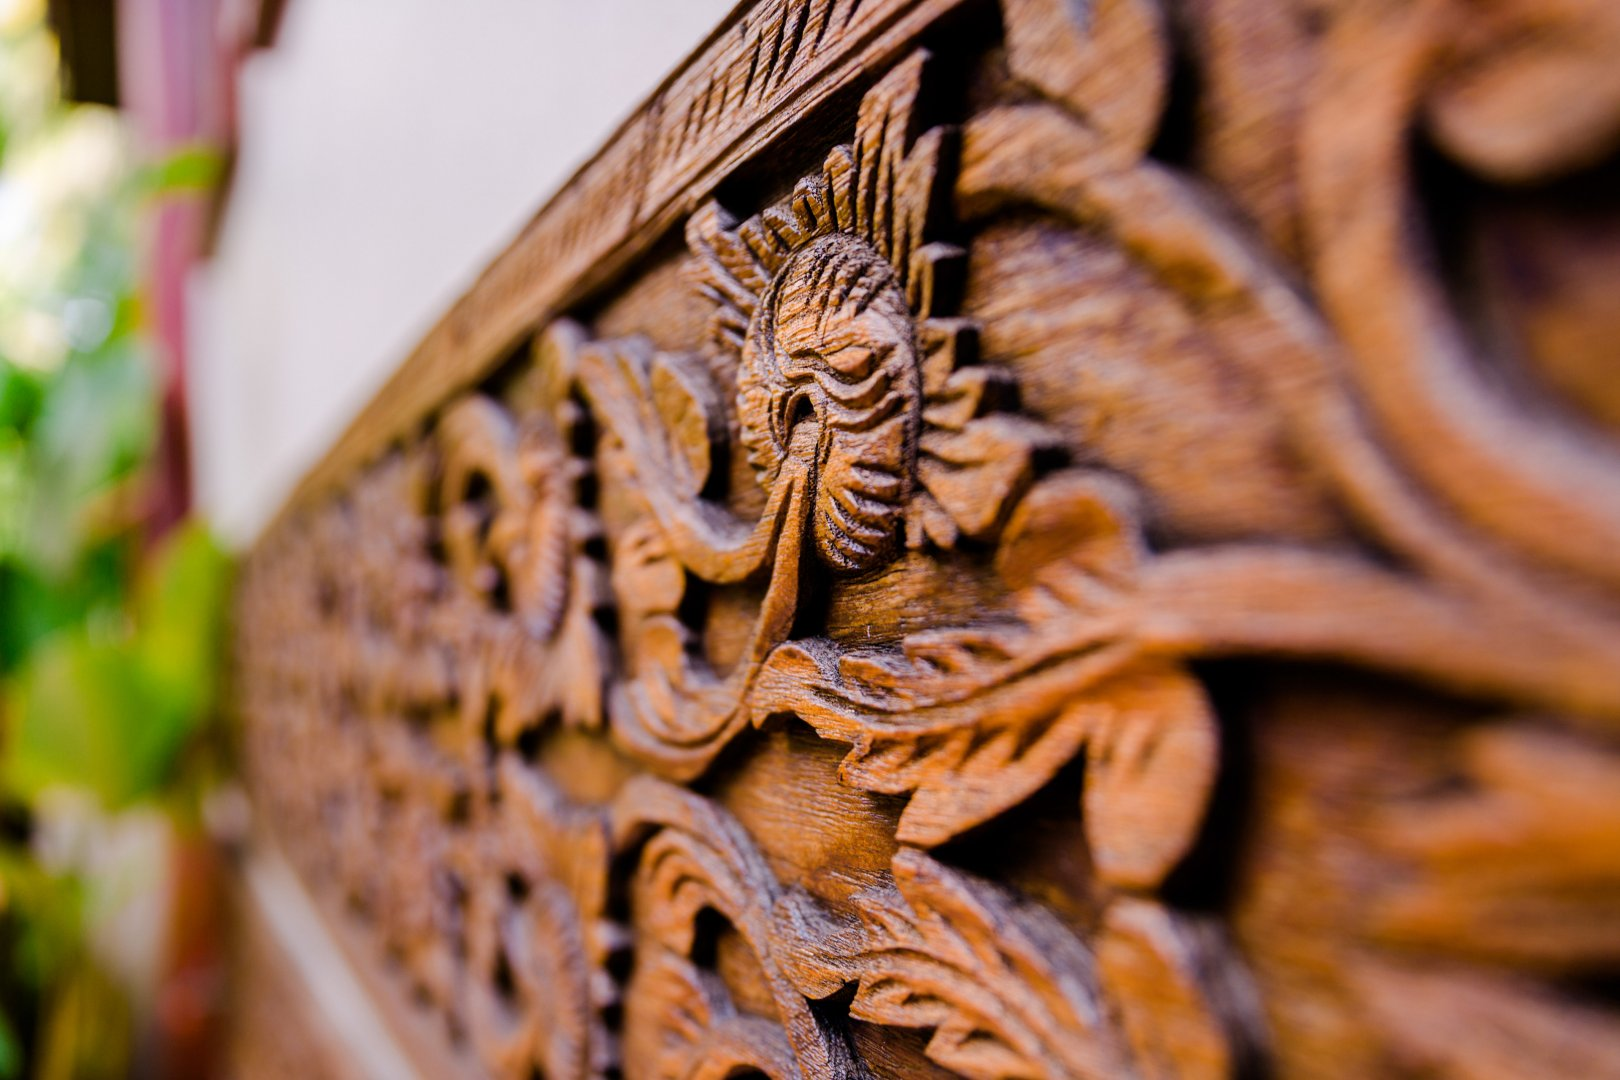 Carving Stone carving Wood Close-up Art Relief Sculpture Plant Metal